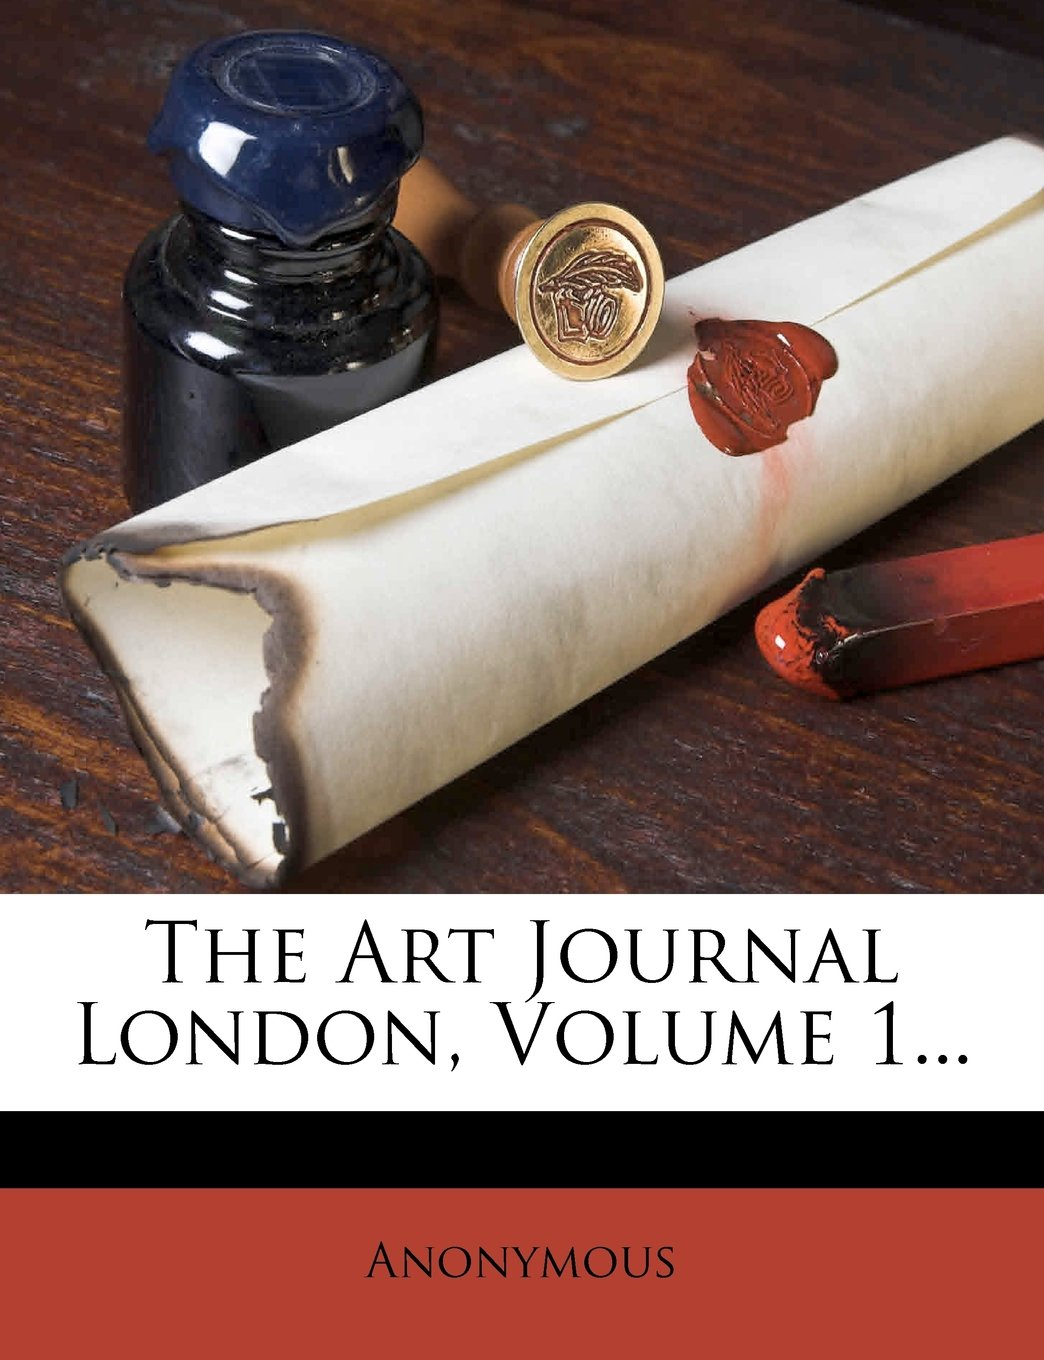 The Art Journal London, Volume 1... ebook